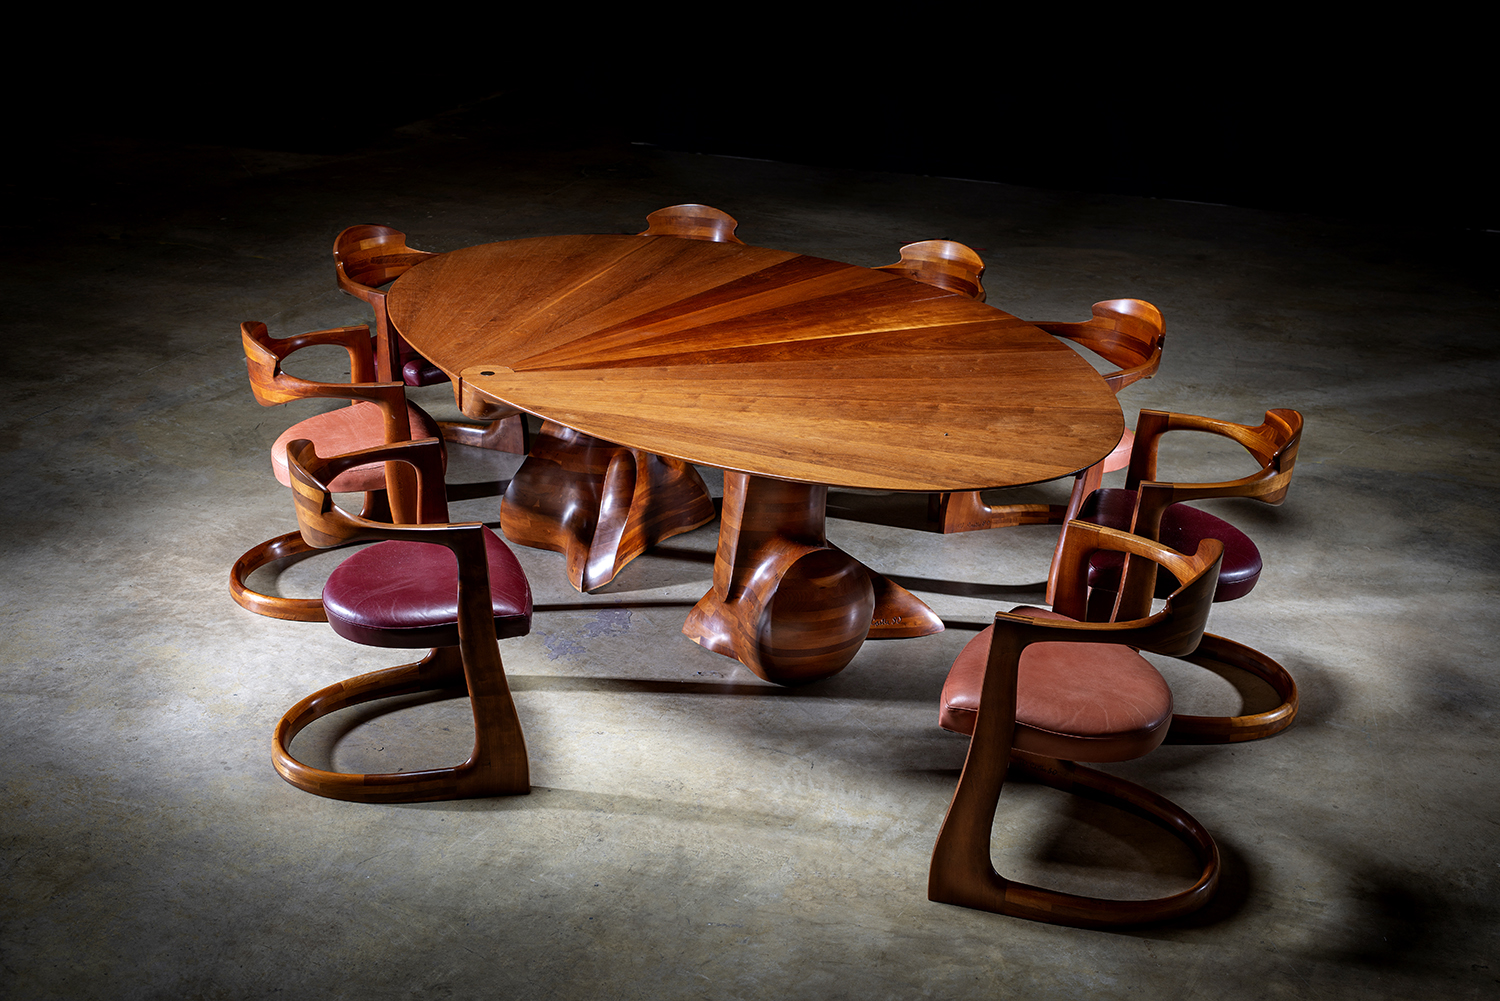 Dining Table and Chairs, 1980